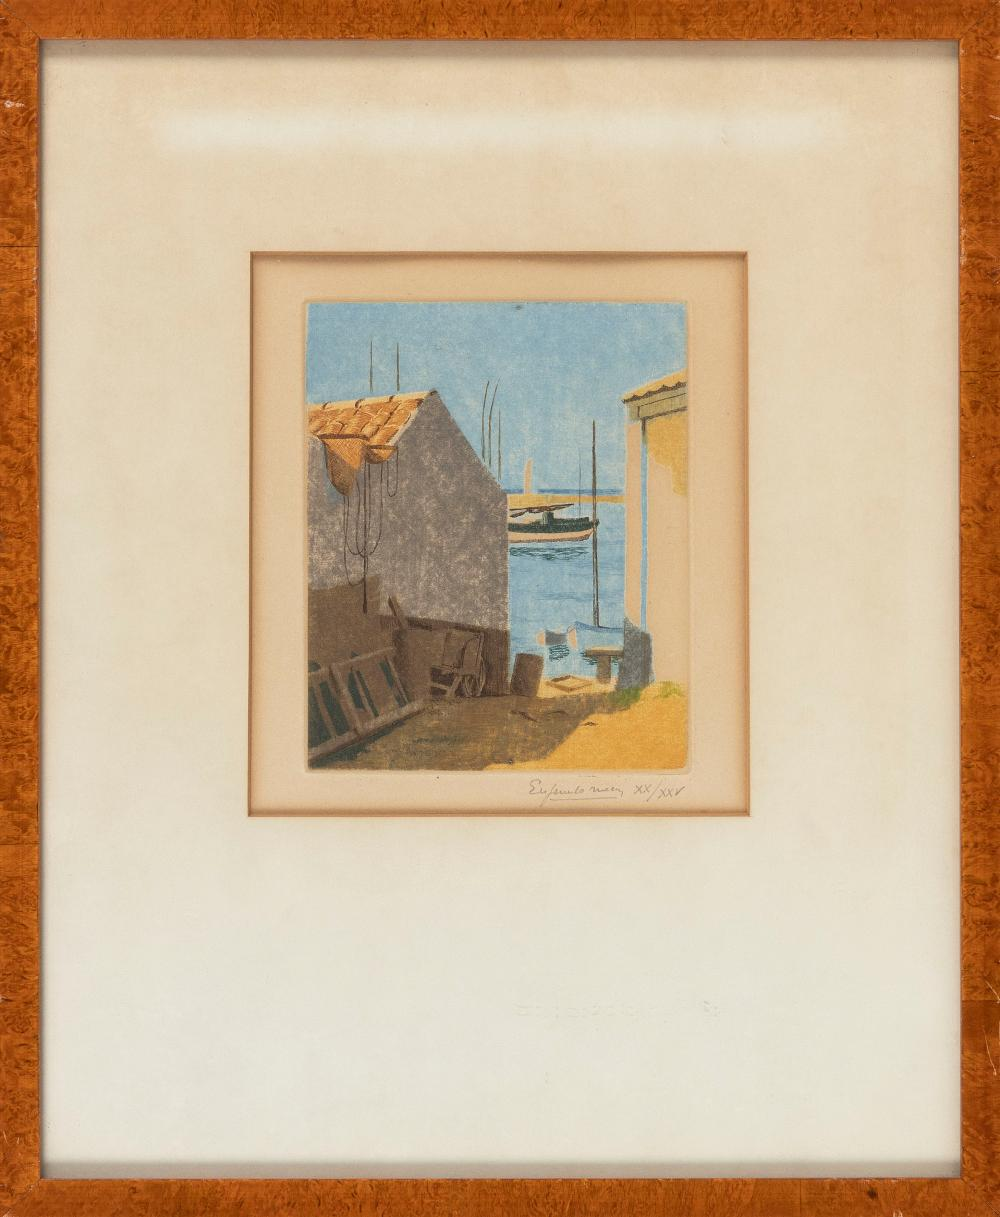 """EUROPEAN COLORED ETCHING Early 20th Century 6.5"""" x 5.25"""" to the plate line. Framed 16.5"""" x 13.75""""."""